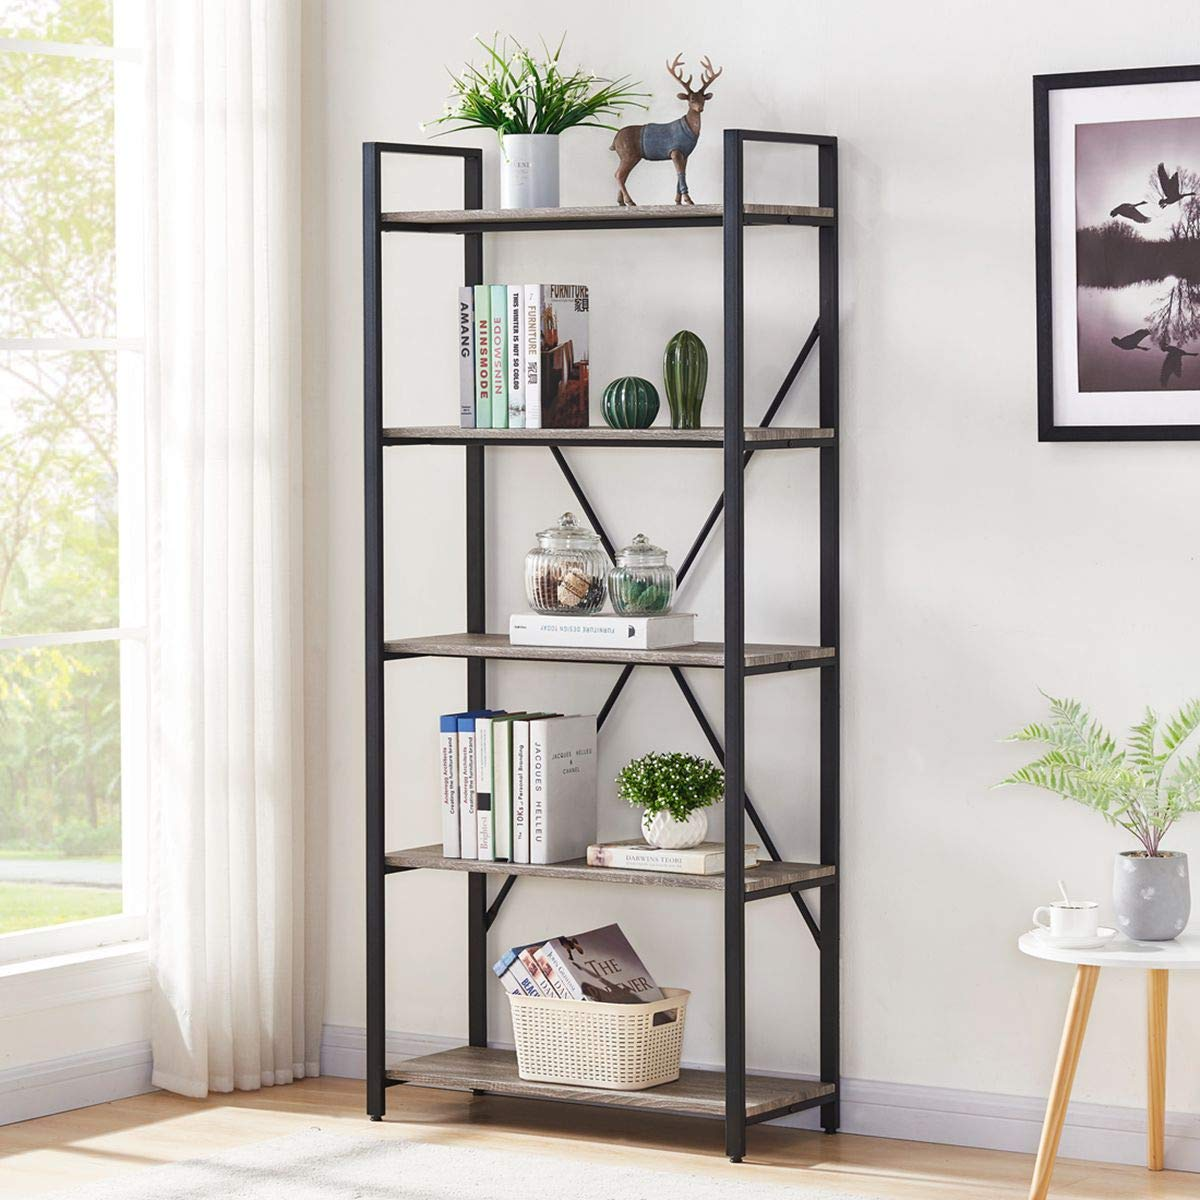 BON AUGURE Bookshelf 5 Tier Etagere Bookcase, Wood and Metal Shelving Unit, Industrial Bookshelves and Bookcases Dark Gray Oak